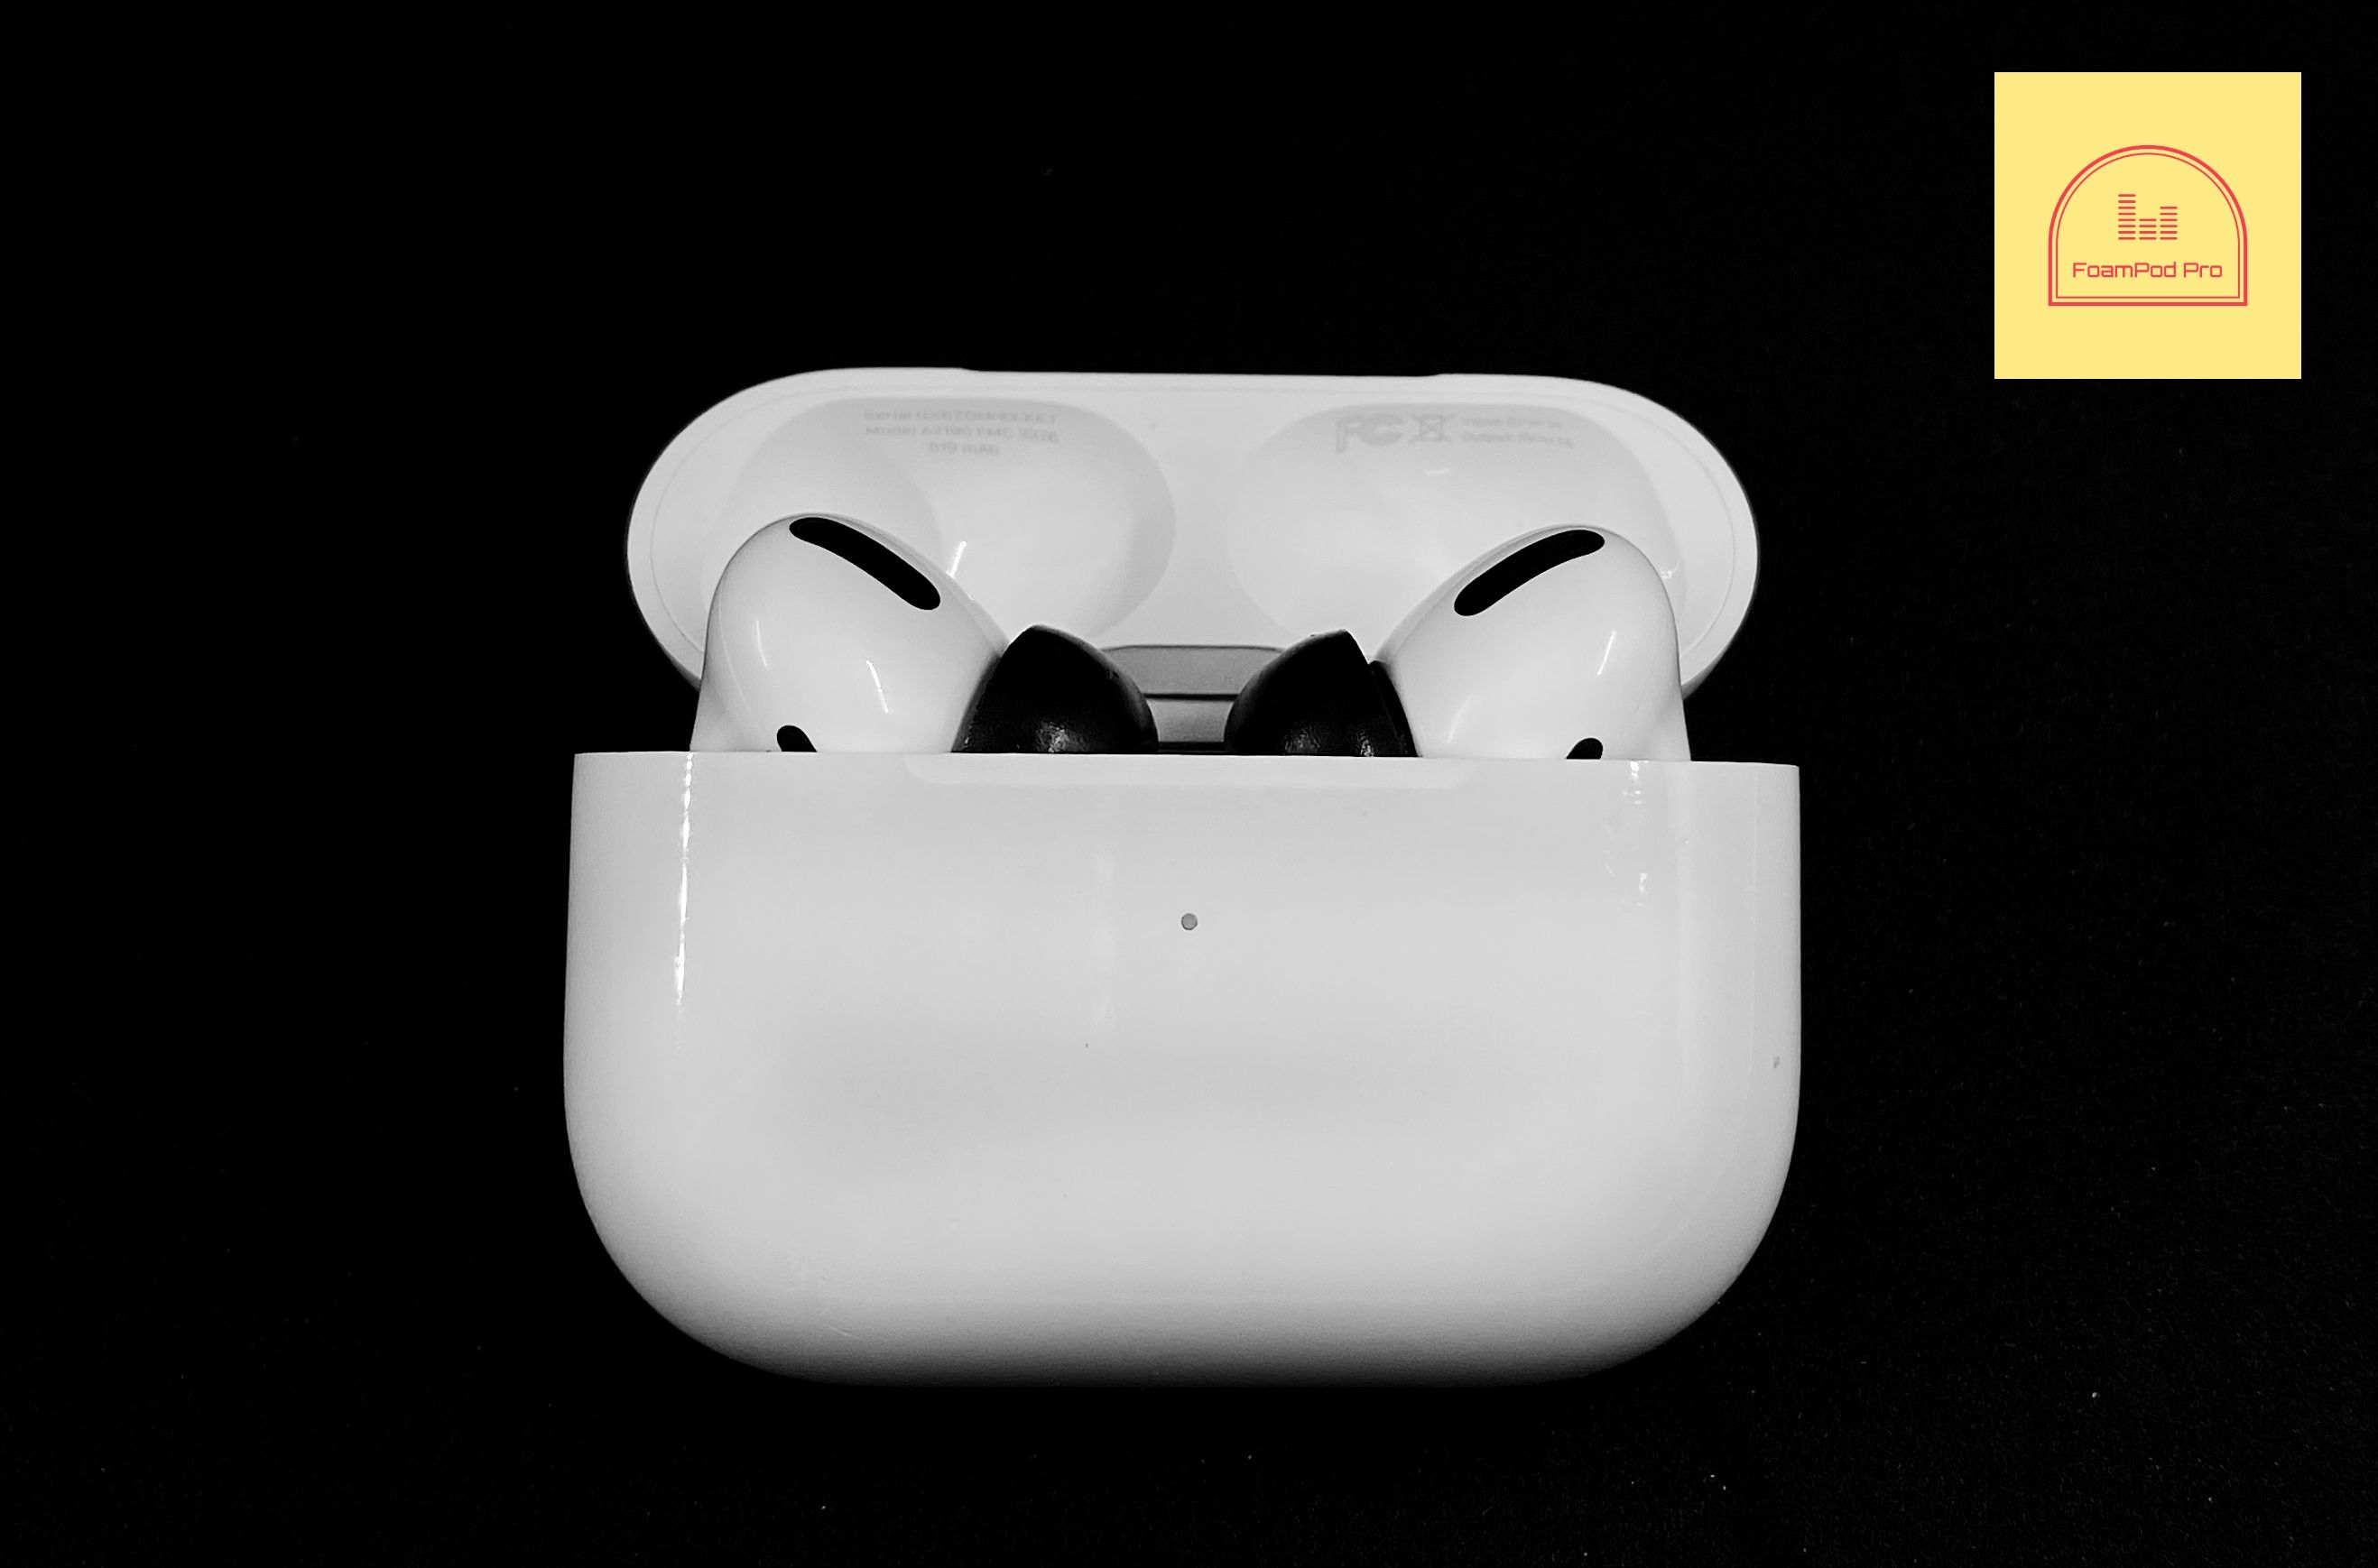 So You Got The New Apple Airpods Pro They Are Awesome Right Yes However Have You Ever Sat Down To Enjoy Some Music An Ebook Apple Airpods Pro Airpod Pro